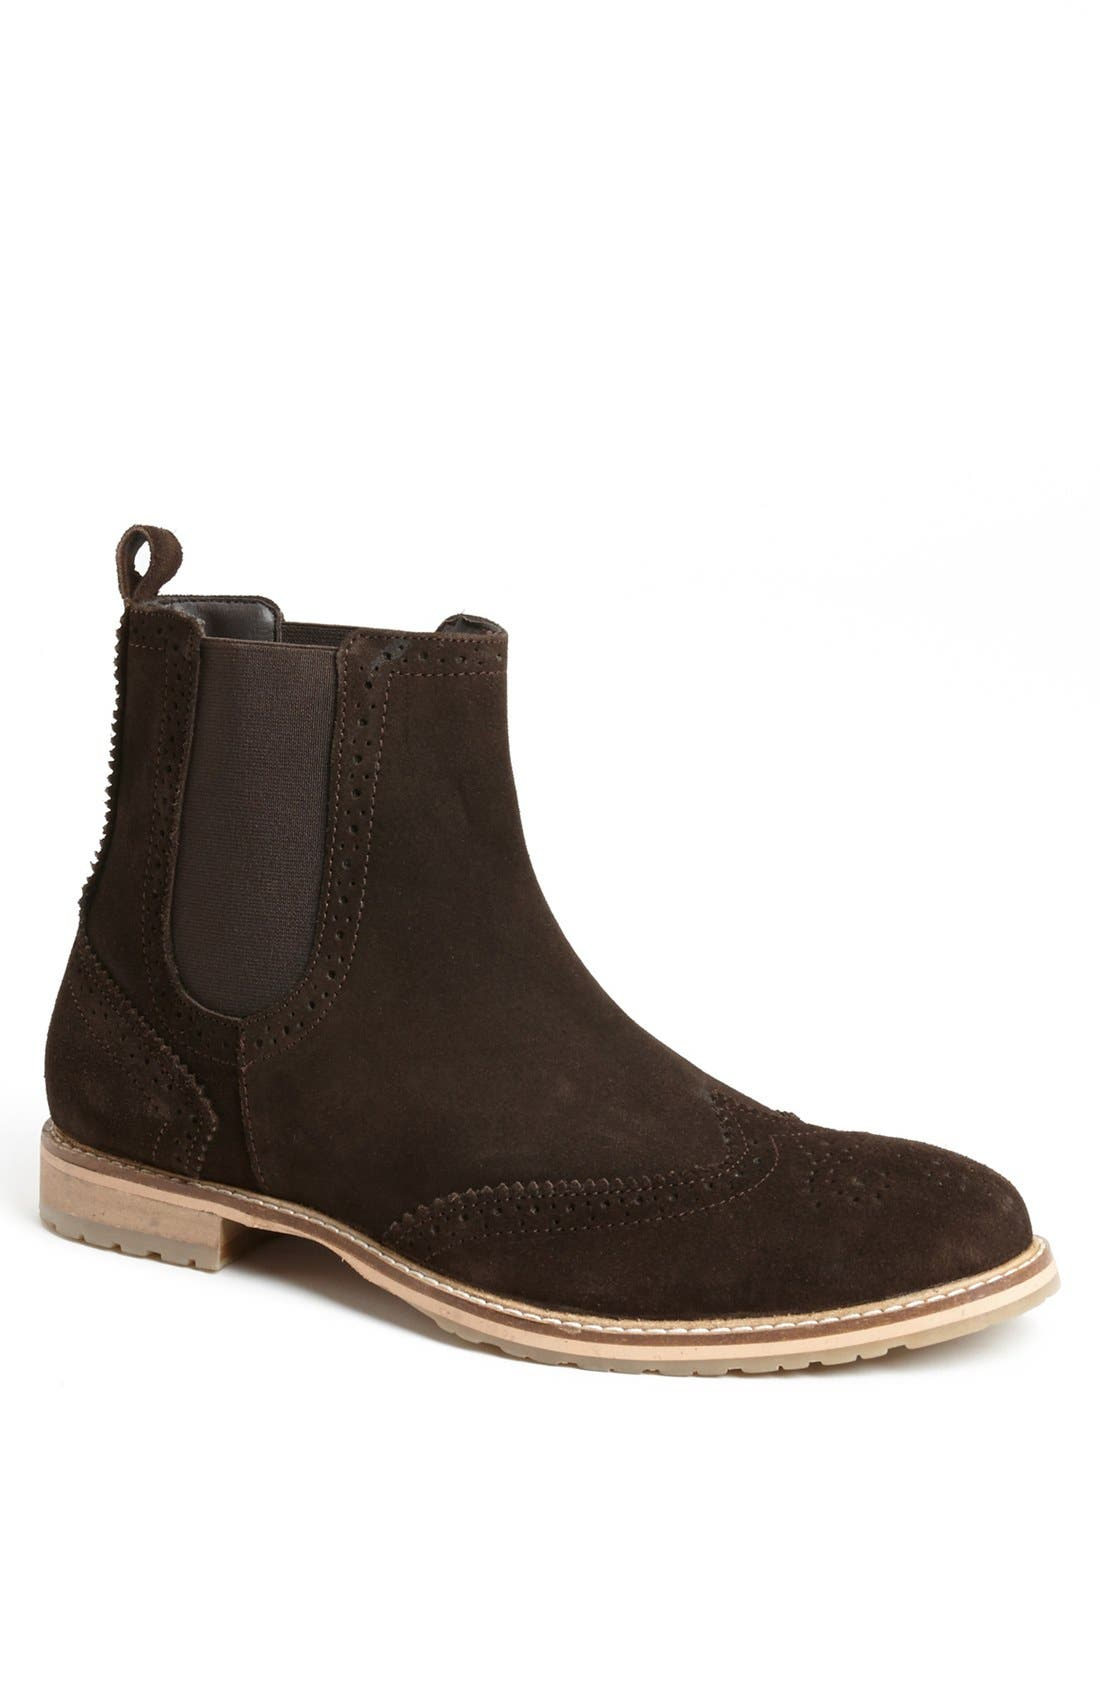 Alternate Image 1 Selected - Ben Sherman 'Bruno' Wingtip Chelsea Boot (Men)